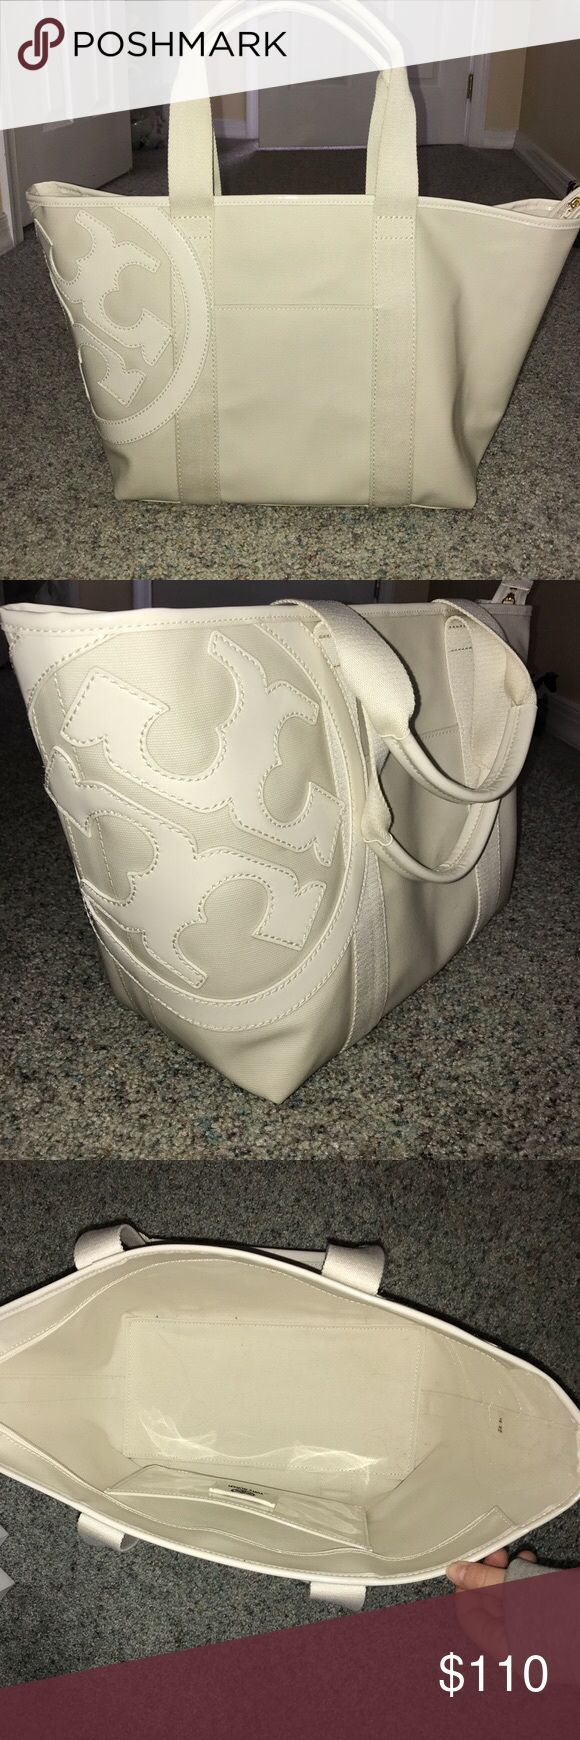 Tory Burch Large Canvas Tote Bag NWOT Large white Tory Burch Canvas Tote Bag. Never used, great condition Tory Burch Bags